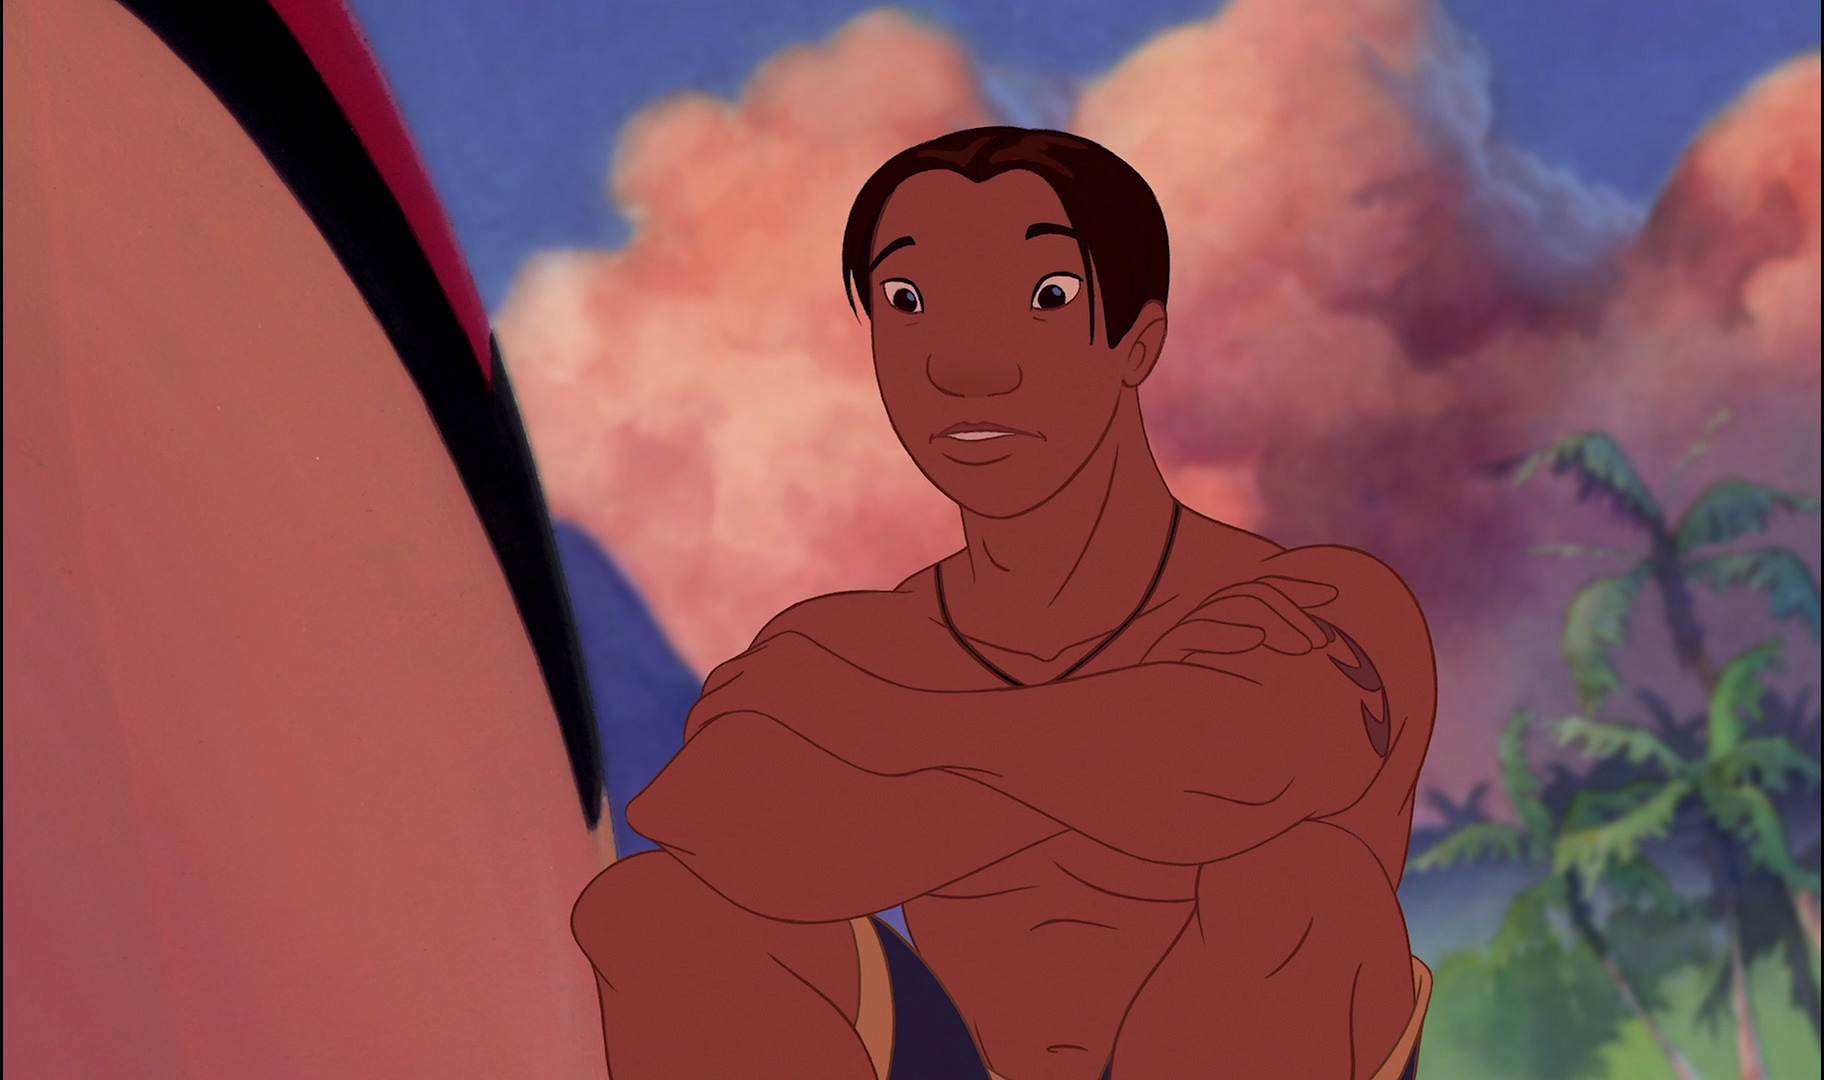 David Kawena, Personnage Dans Lilo  Stitch  Disney-Planet-6537